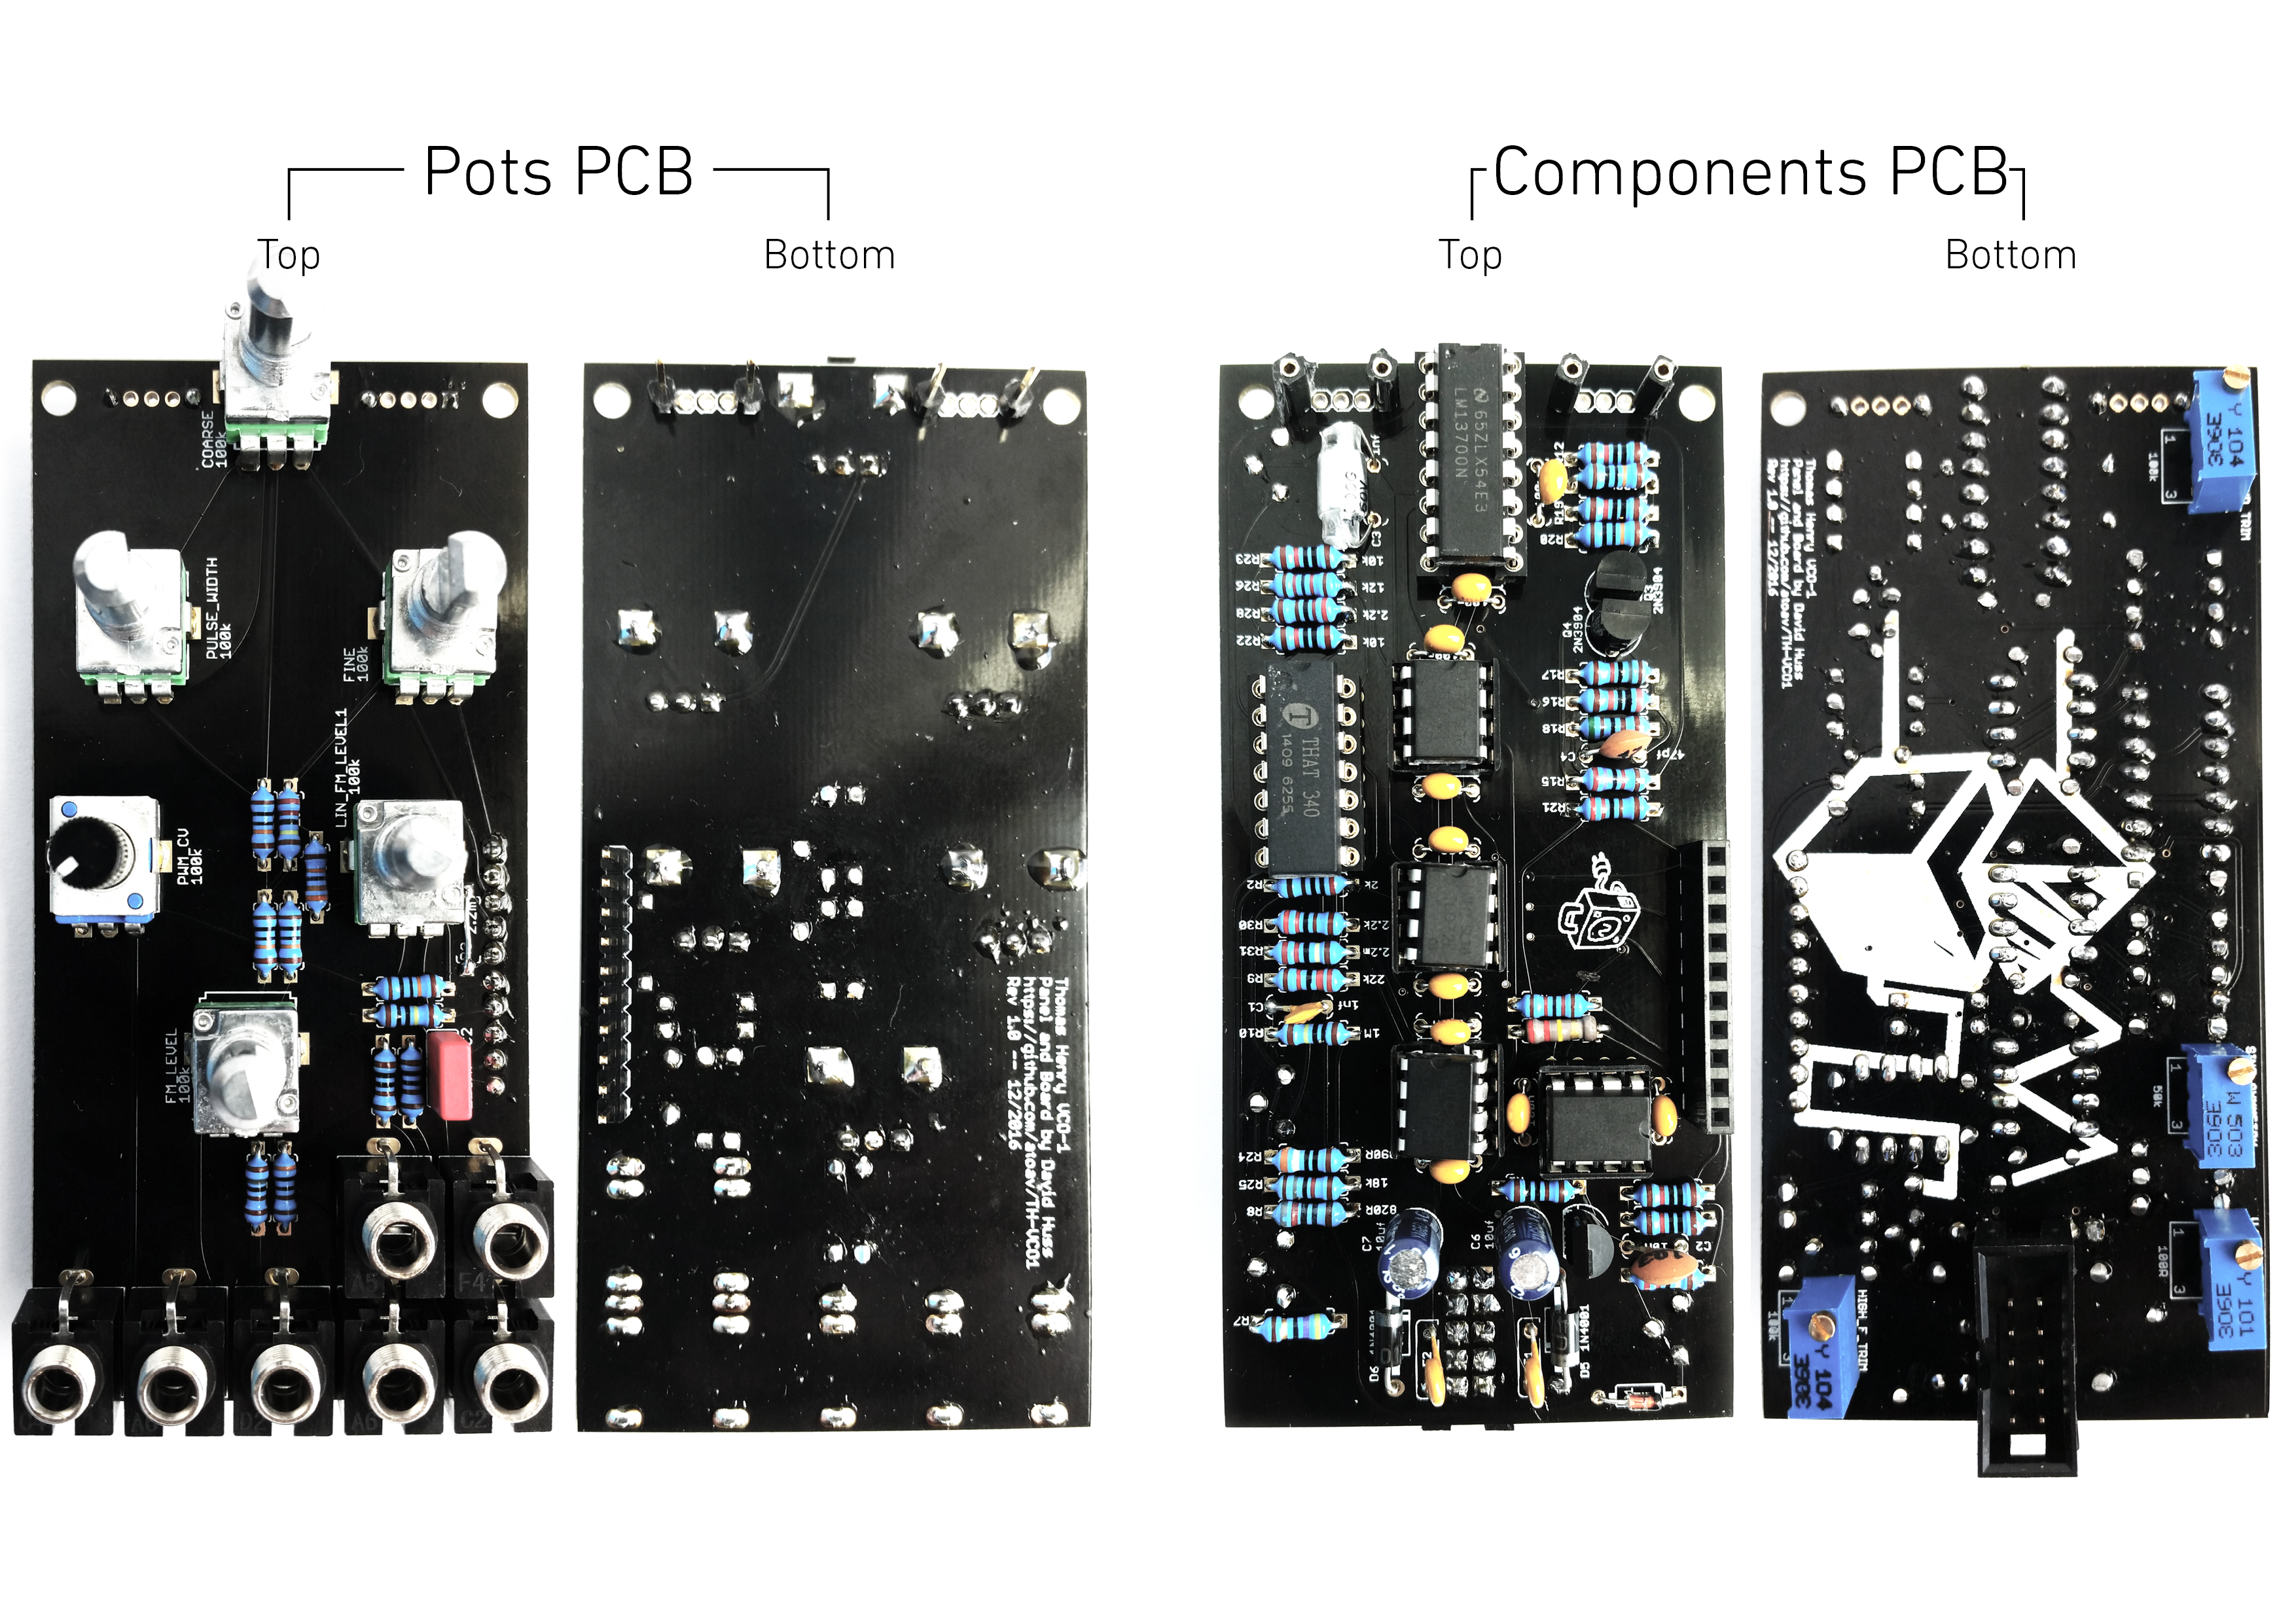 th-vco1/DIY_Manuals/Finished_PCBs.png